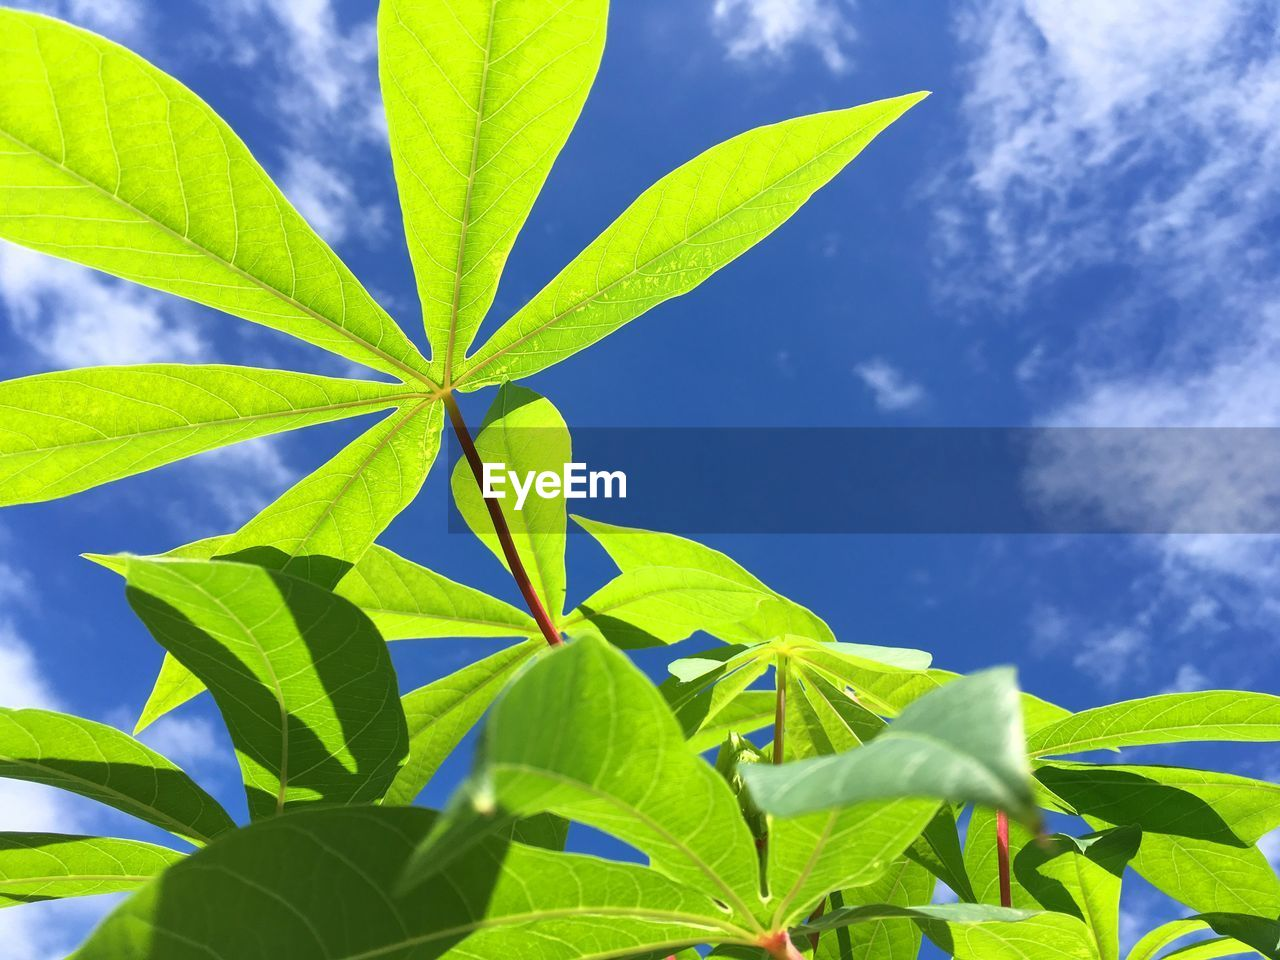 leaf, plant part, growth, green color, plant, nature, sky, beauty in nature, no people, day, close-up, low angle view, outdoors, sunlight, cloud - sky, blue, tranquility, freshness, green, tree, leaves